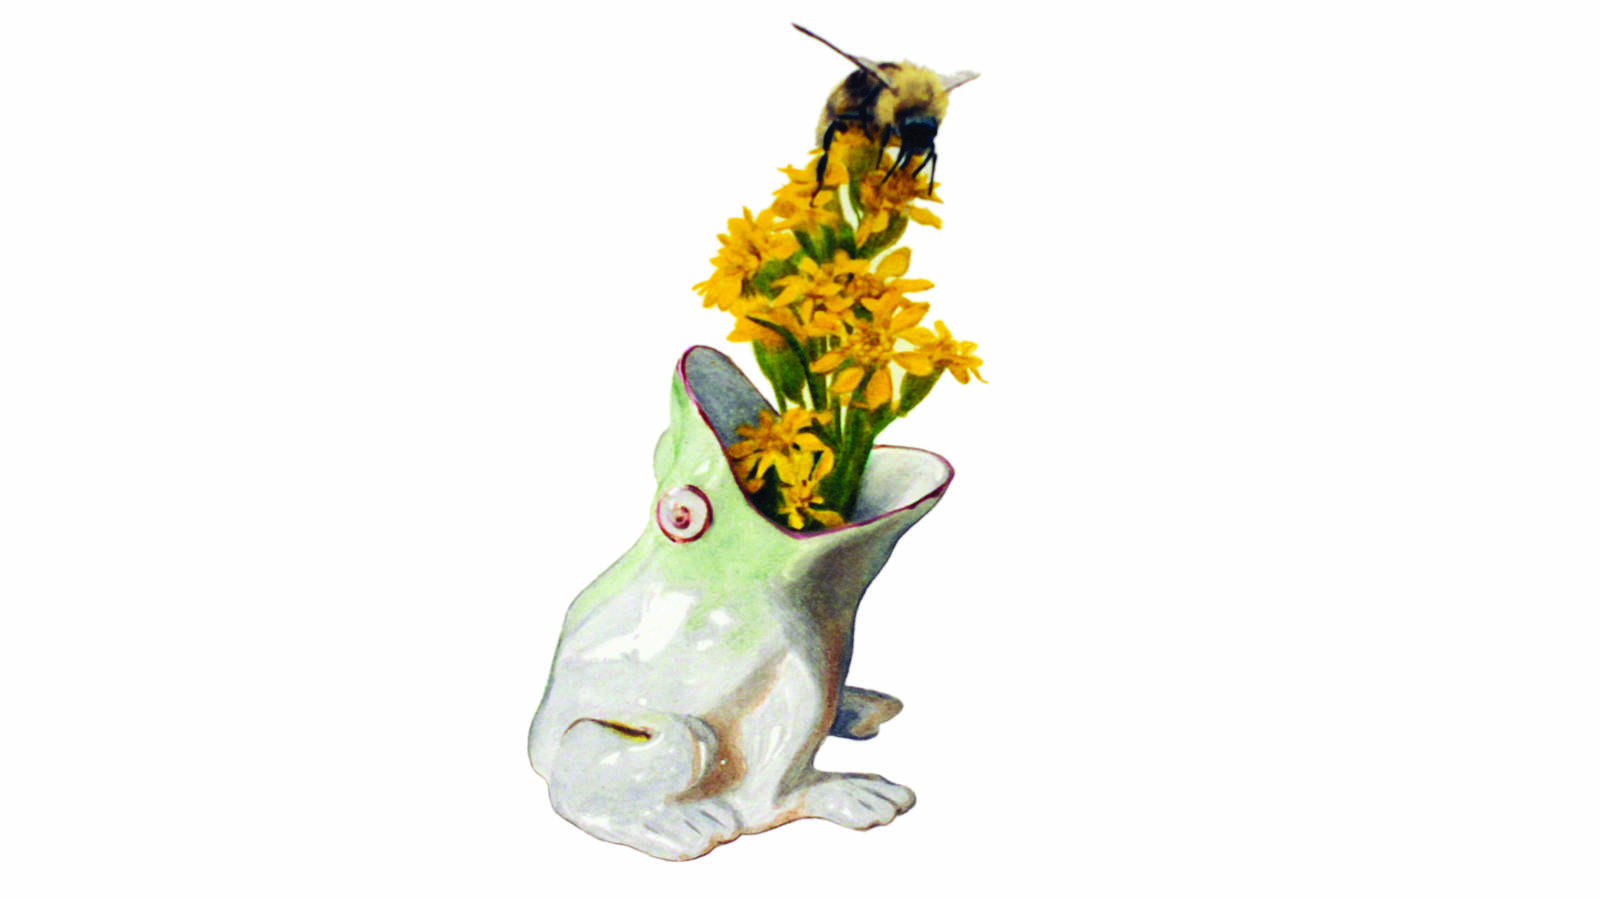 """<h3 style=""""text-align: center; padding: 50px;""""><span class=""""text-Intro-style"""">Heckel spotted the porcelain frog in a bedroom at Sagamore Hill National Historic Site in New York. (She paired it with goldenrod and a bee she saw in the garden.) The home of President Theodore Roosevelt from 1885 to 1919, Sagamore Hill was known as the """"summer White House"""" during Roosevelt's years in office. Colored pencil on paper, 2019.</span></h3>"""